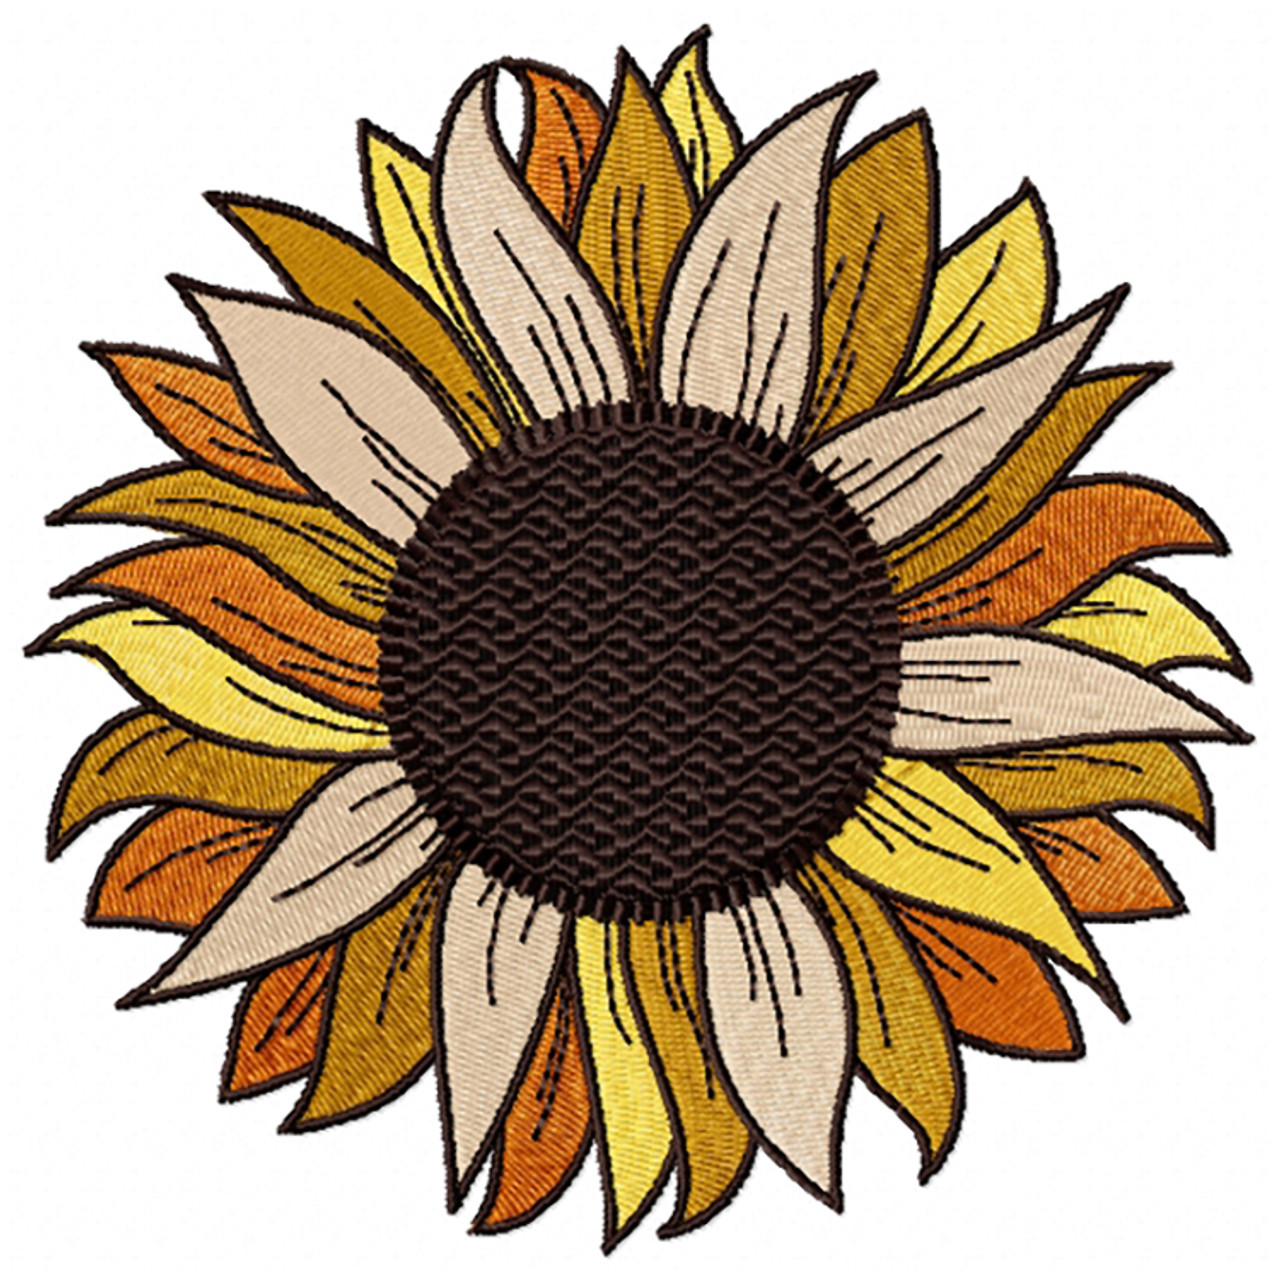 Detailed Sunflower Full Collection 01